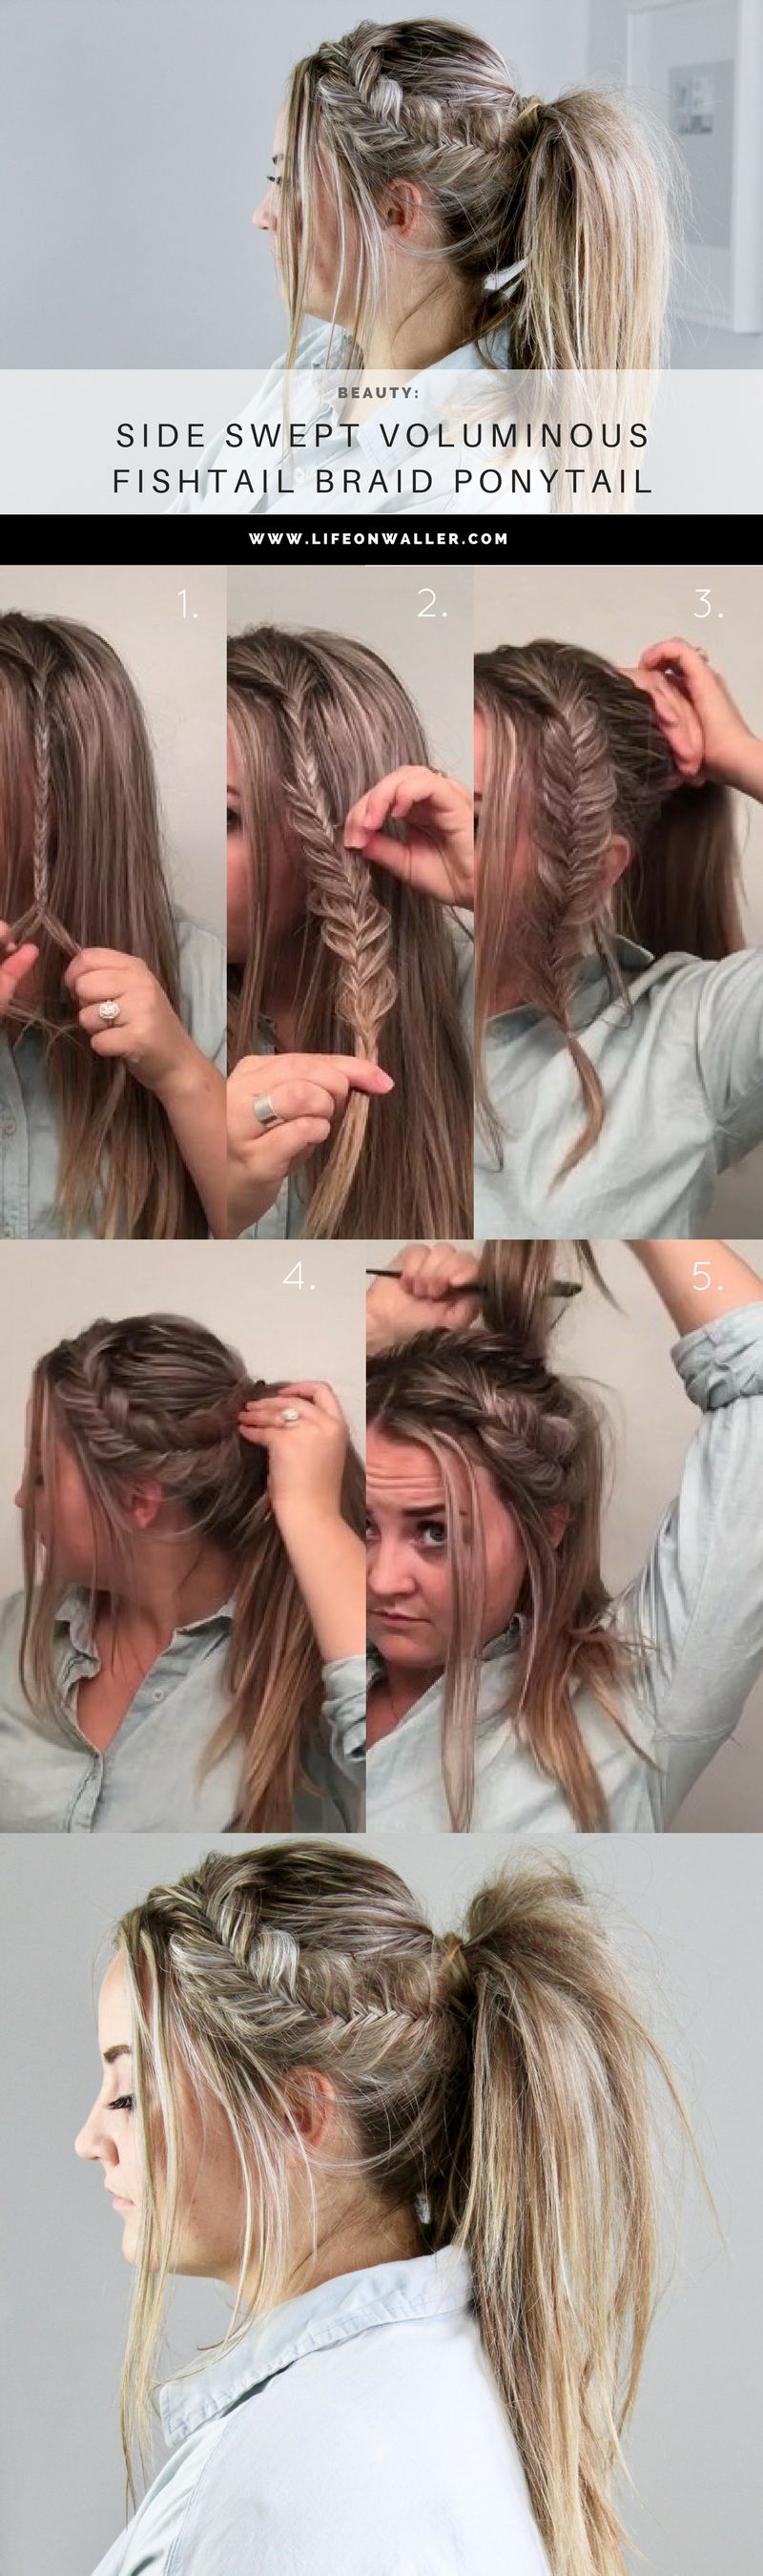 Side swept voluminous fishtail ponytail tutorial casual hairstyles